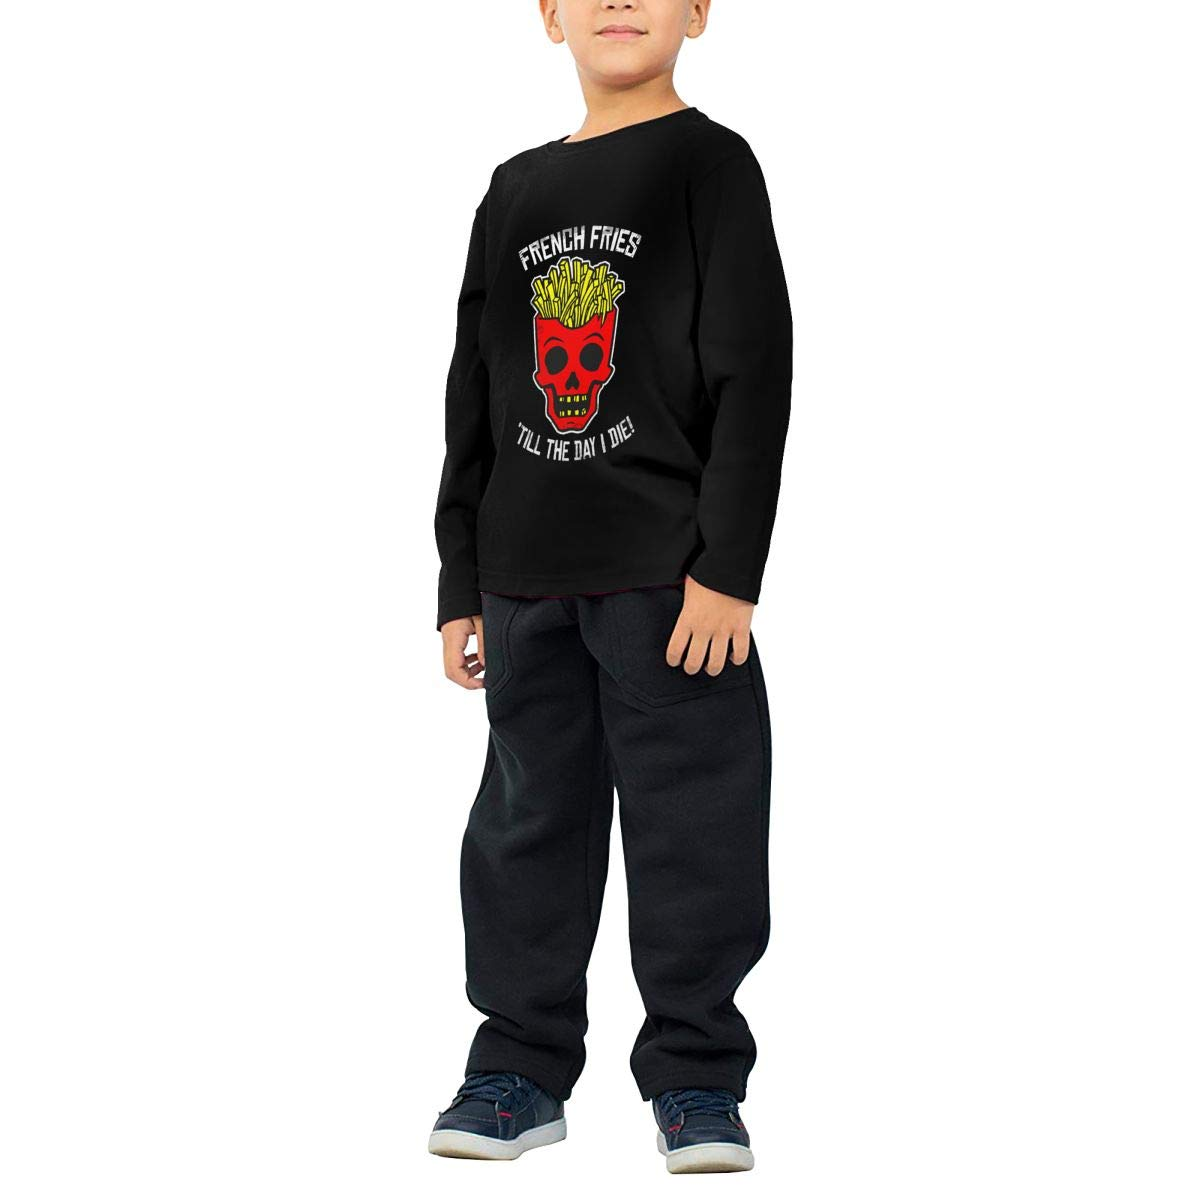 French Dies Childrens Long Sleeve T-Shirt Boys Cotton Tee Tops